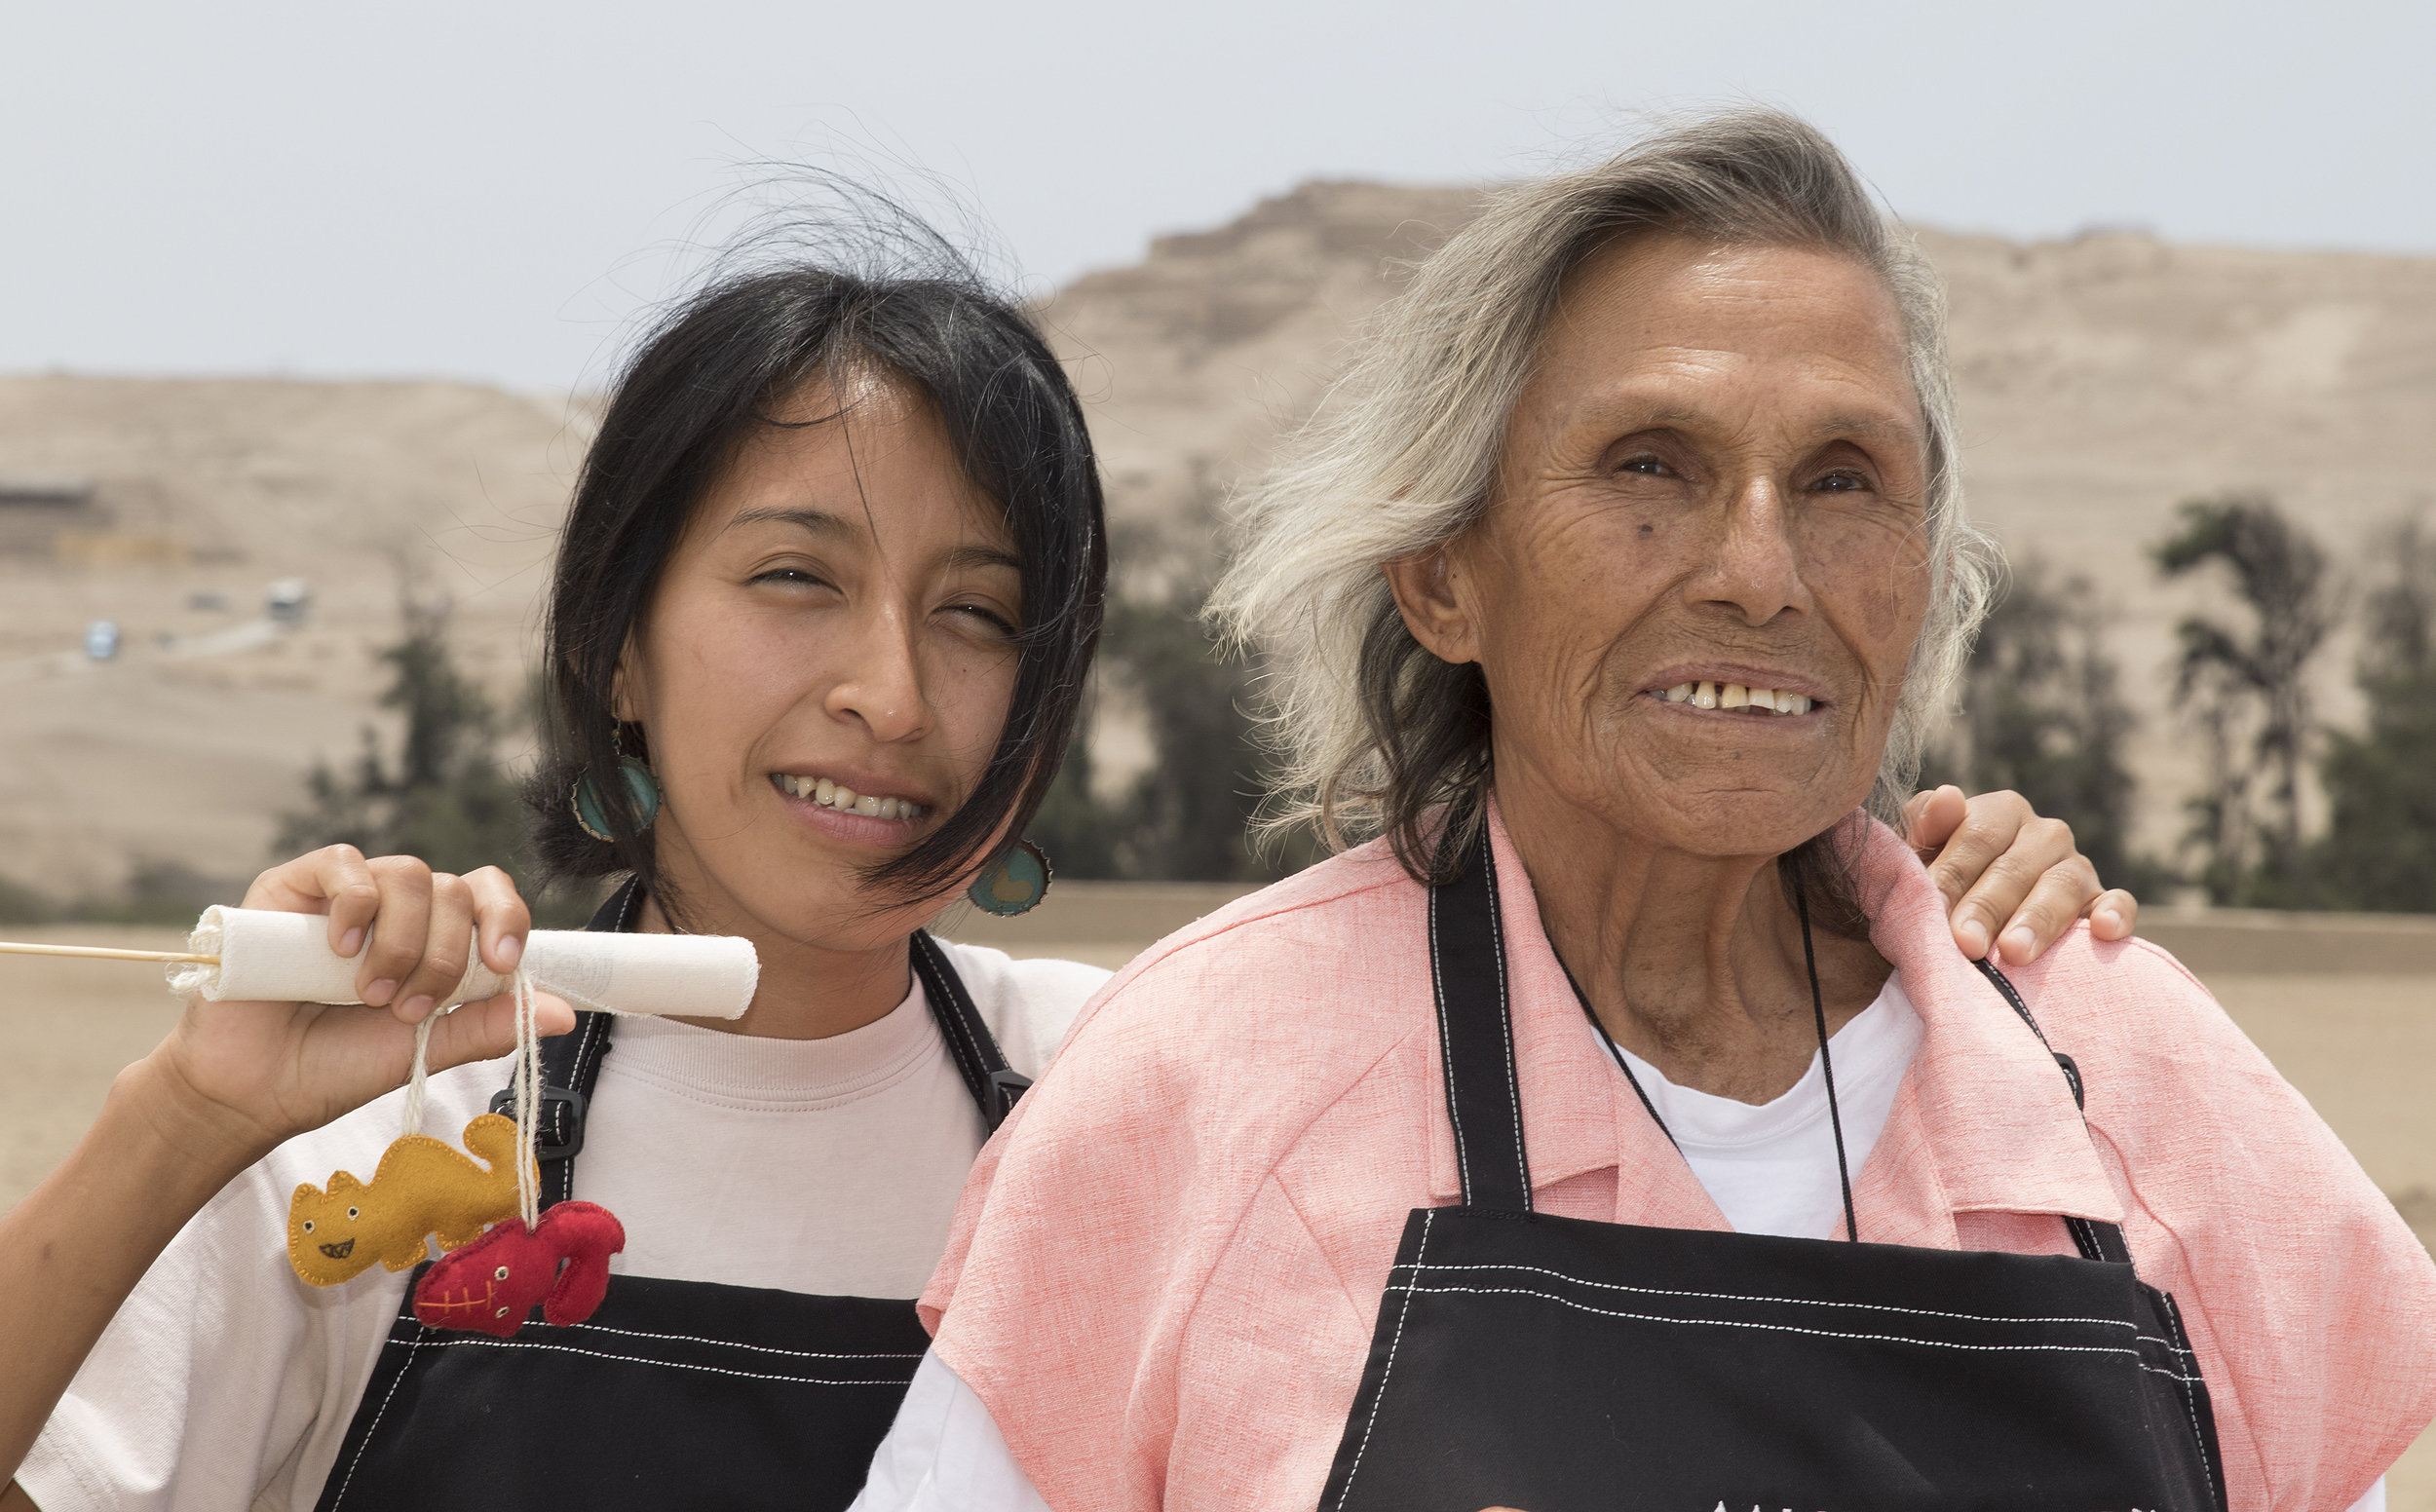 Pachacamac, Peru : SPI is promoting community development and site preservation by bringing together 23 women from settlements around Pachacamac to create a sustainable community business. The women have been trained in business and artisan skills and are working together to create craft products related to the cultural history of Pachacamac. They control and own the business, now called 'SISAN' and through it they build sustainable livelihoods for themselves and their families, strengthen local identity and put the site at the heart of the community.